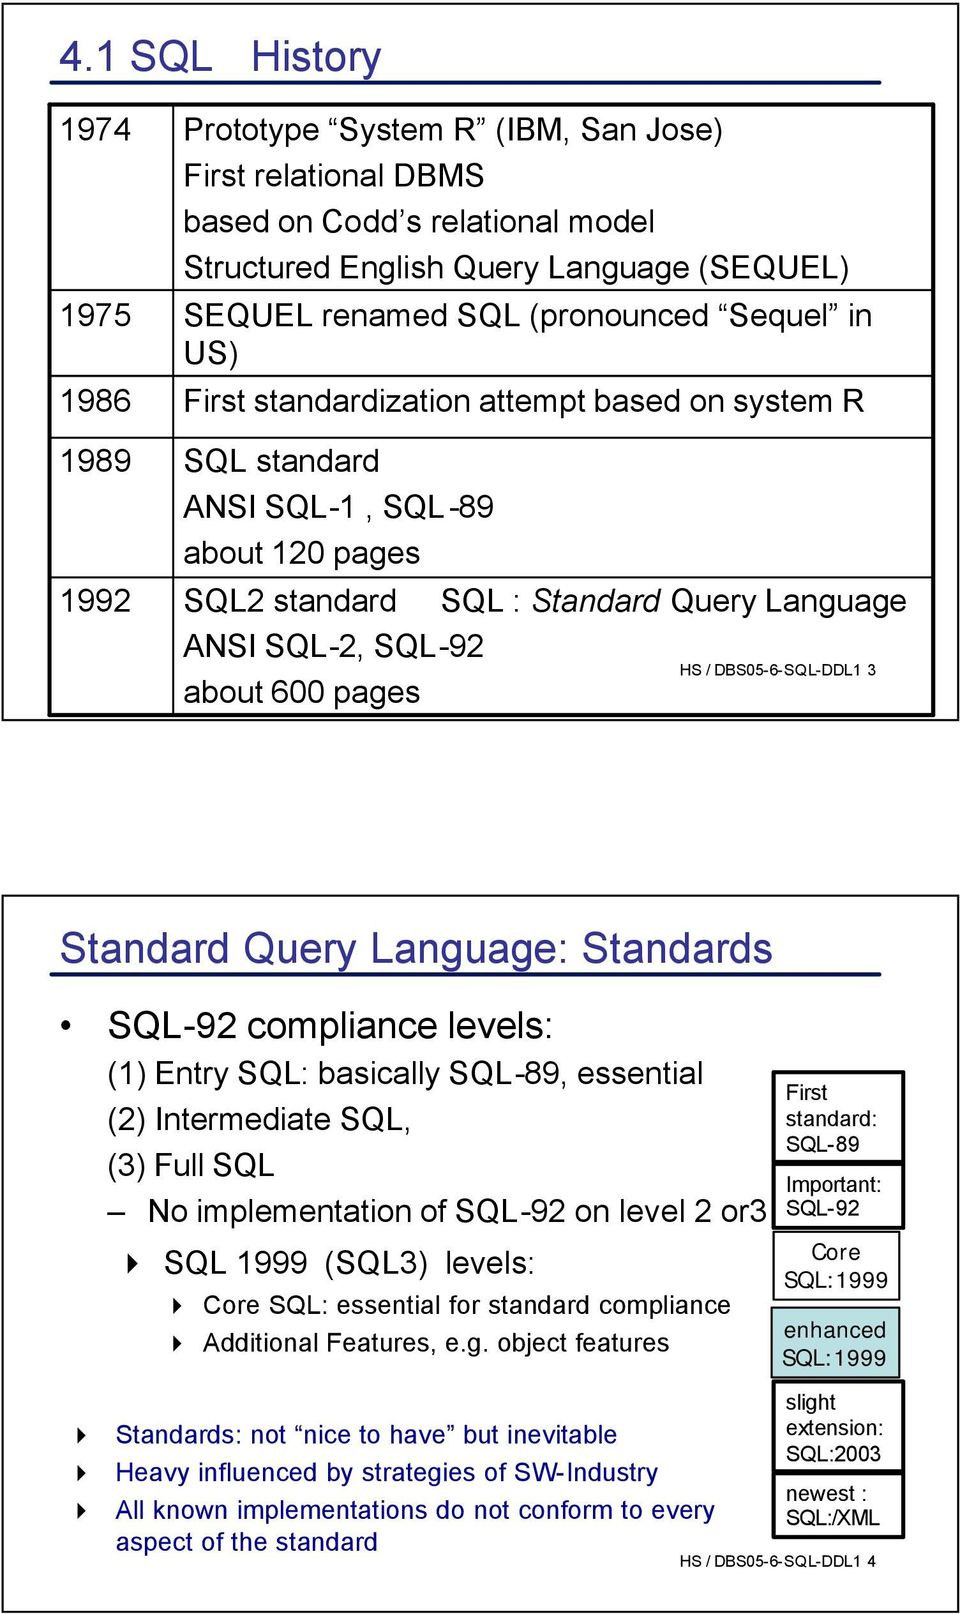 pages Standard Query Language: Standards SQL-92 compliance levels: (1) Entry SQL: basically SQL-89, essential (2) Intermediate SQL, (3) Full SQL No implementation of SQL-92 on level 2 or3 SQL 1999